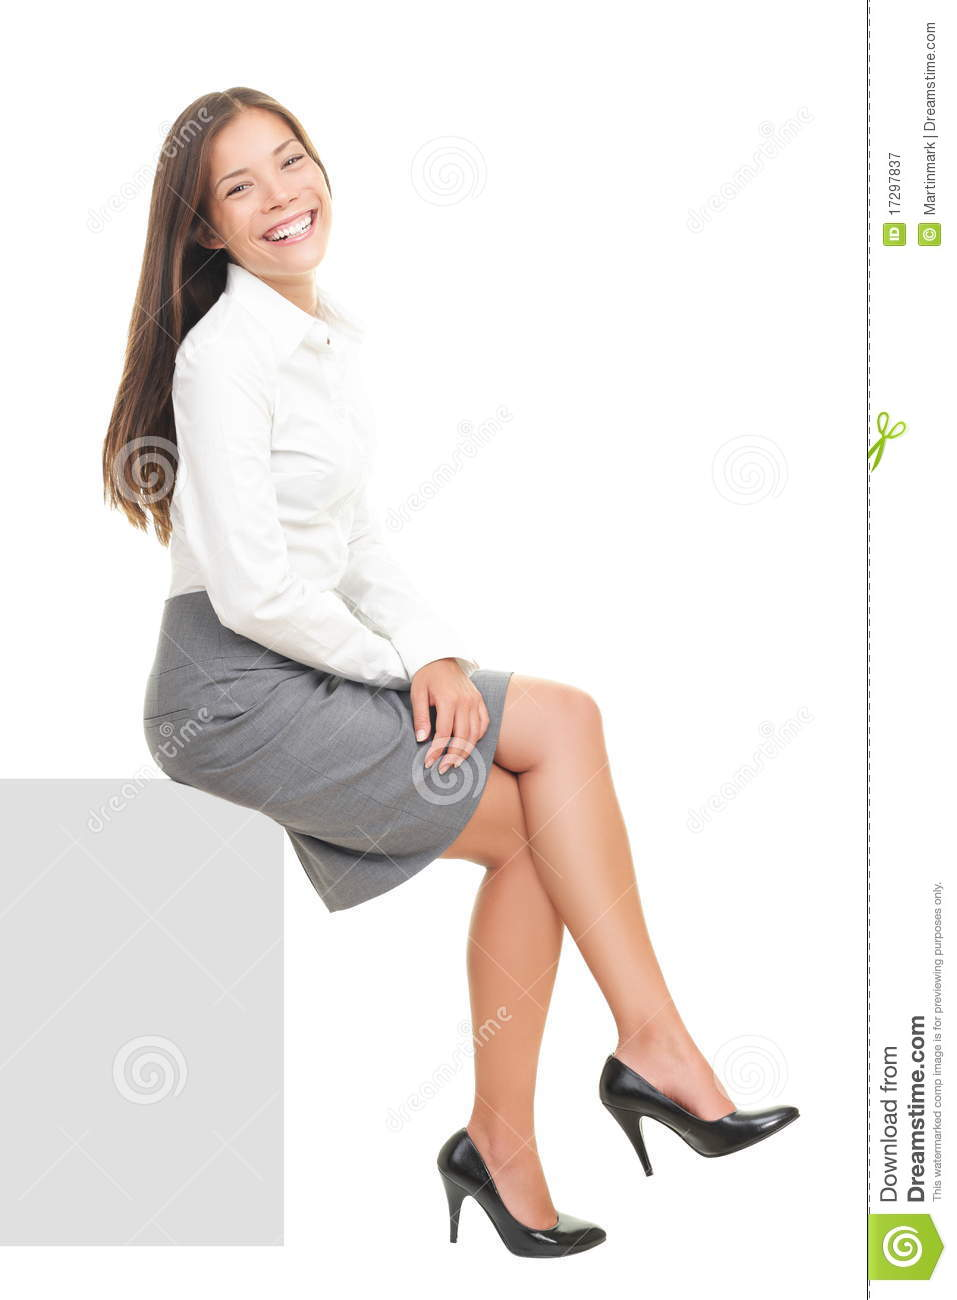 business-woman-sitting-blank-sign-17297837.jpg